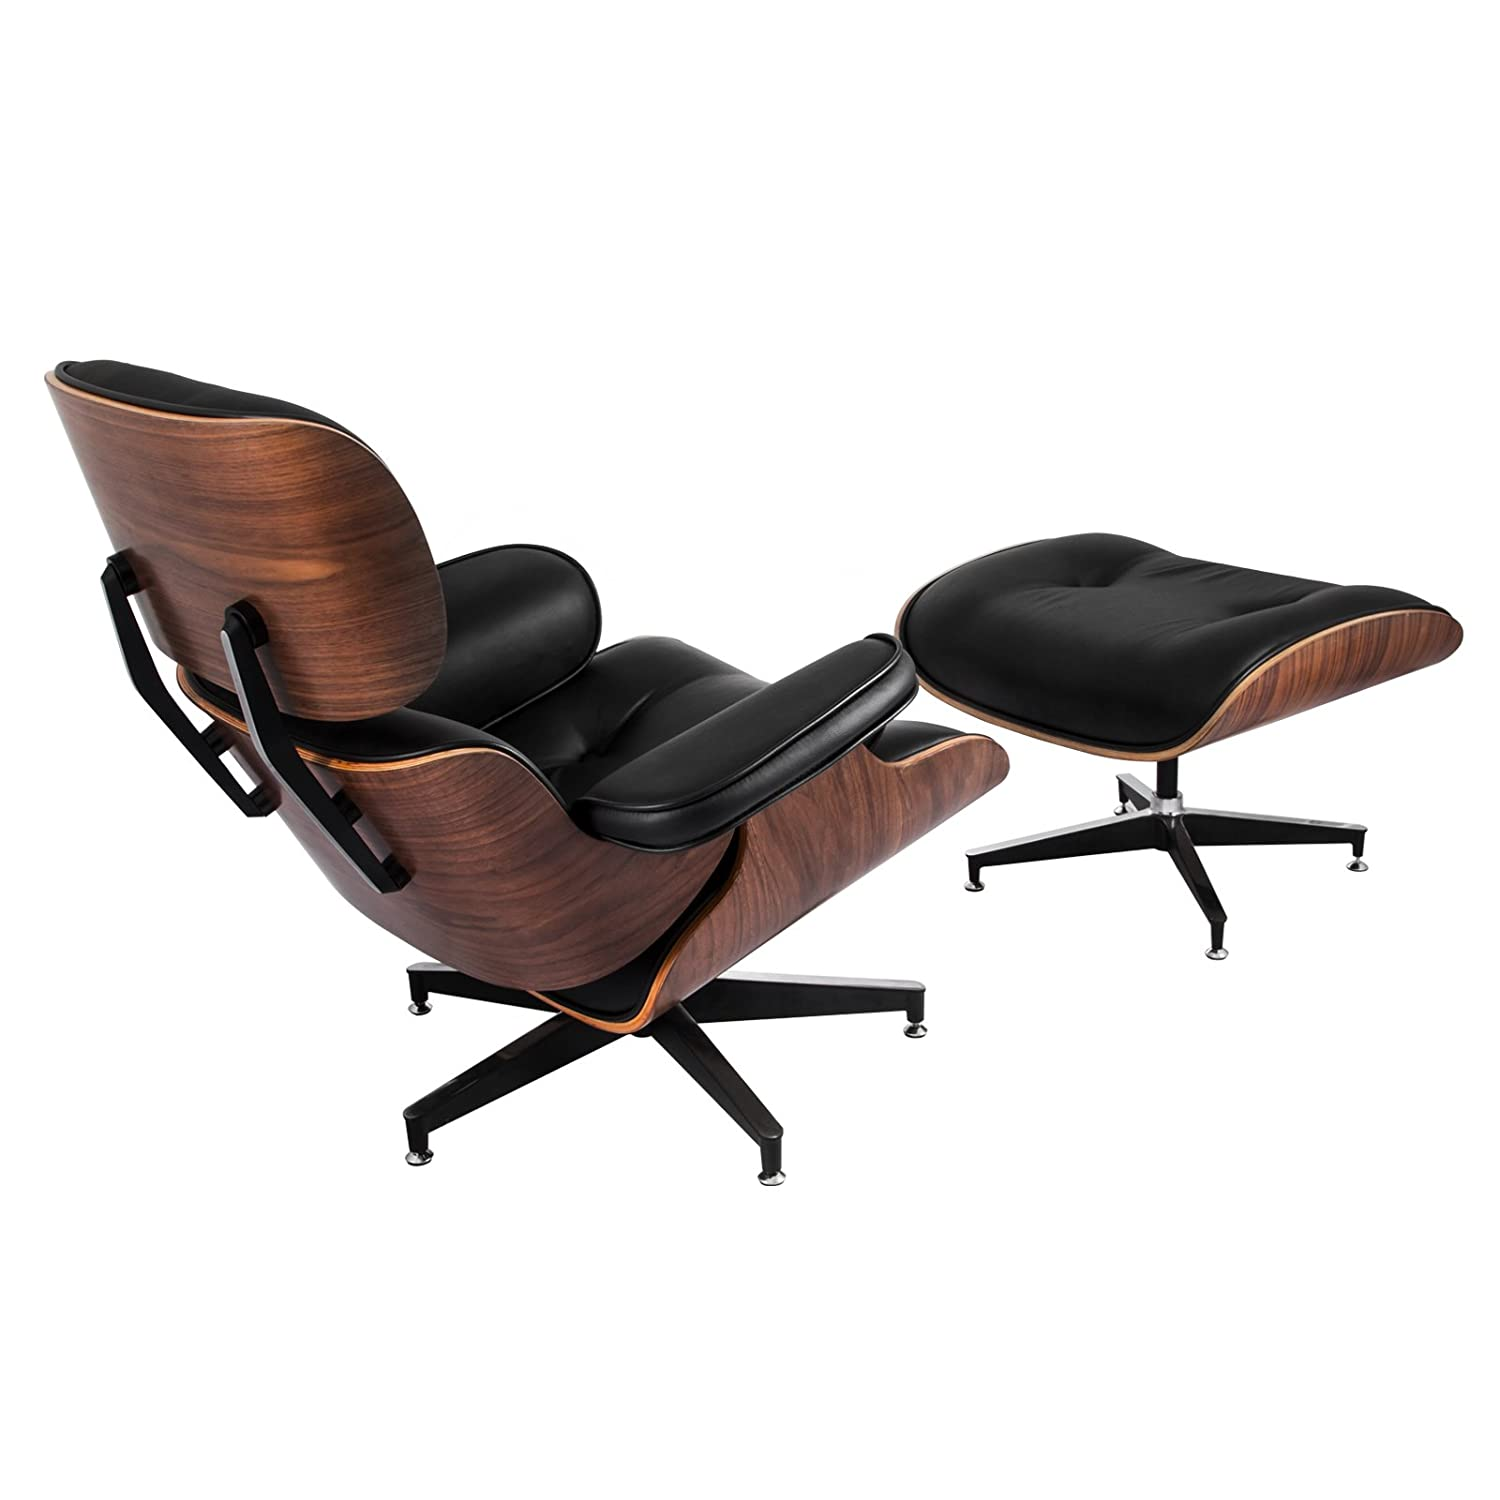 Happybuy Lounge Chair with Ottoman Mid Century Modern Recliner Chair Walnut Black Living Room PU Leather Recliner Armchair with Foot Stool Ottoman